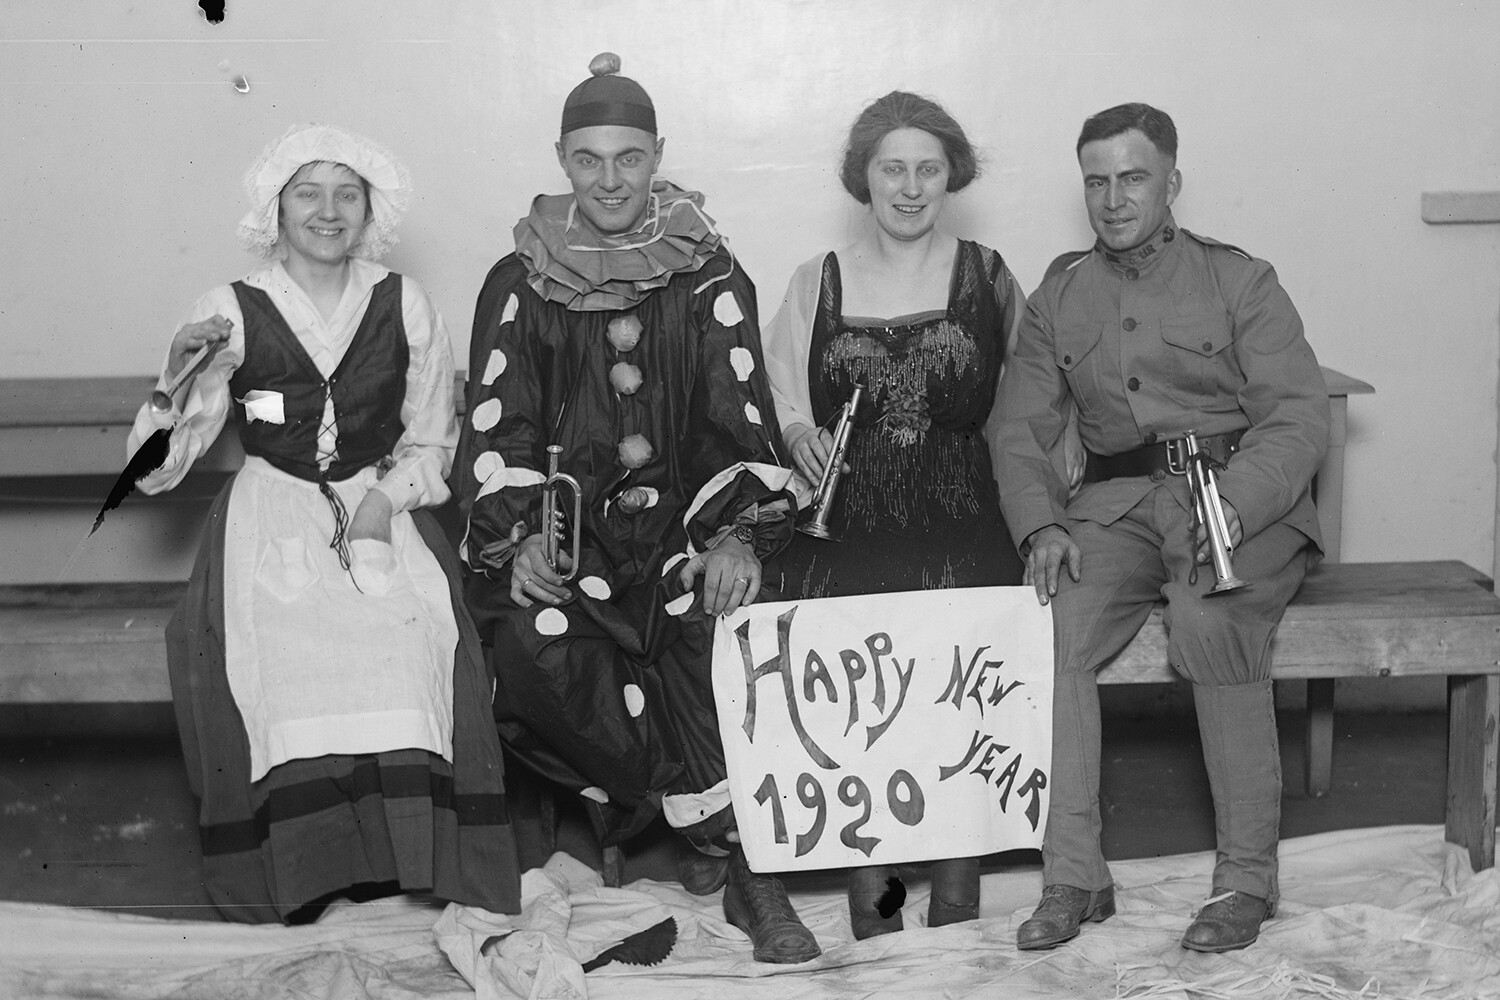 Image of costumed people celebrating the New Year, 1920.